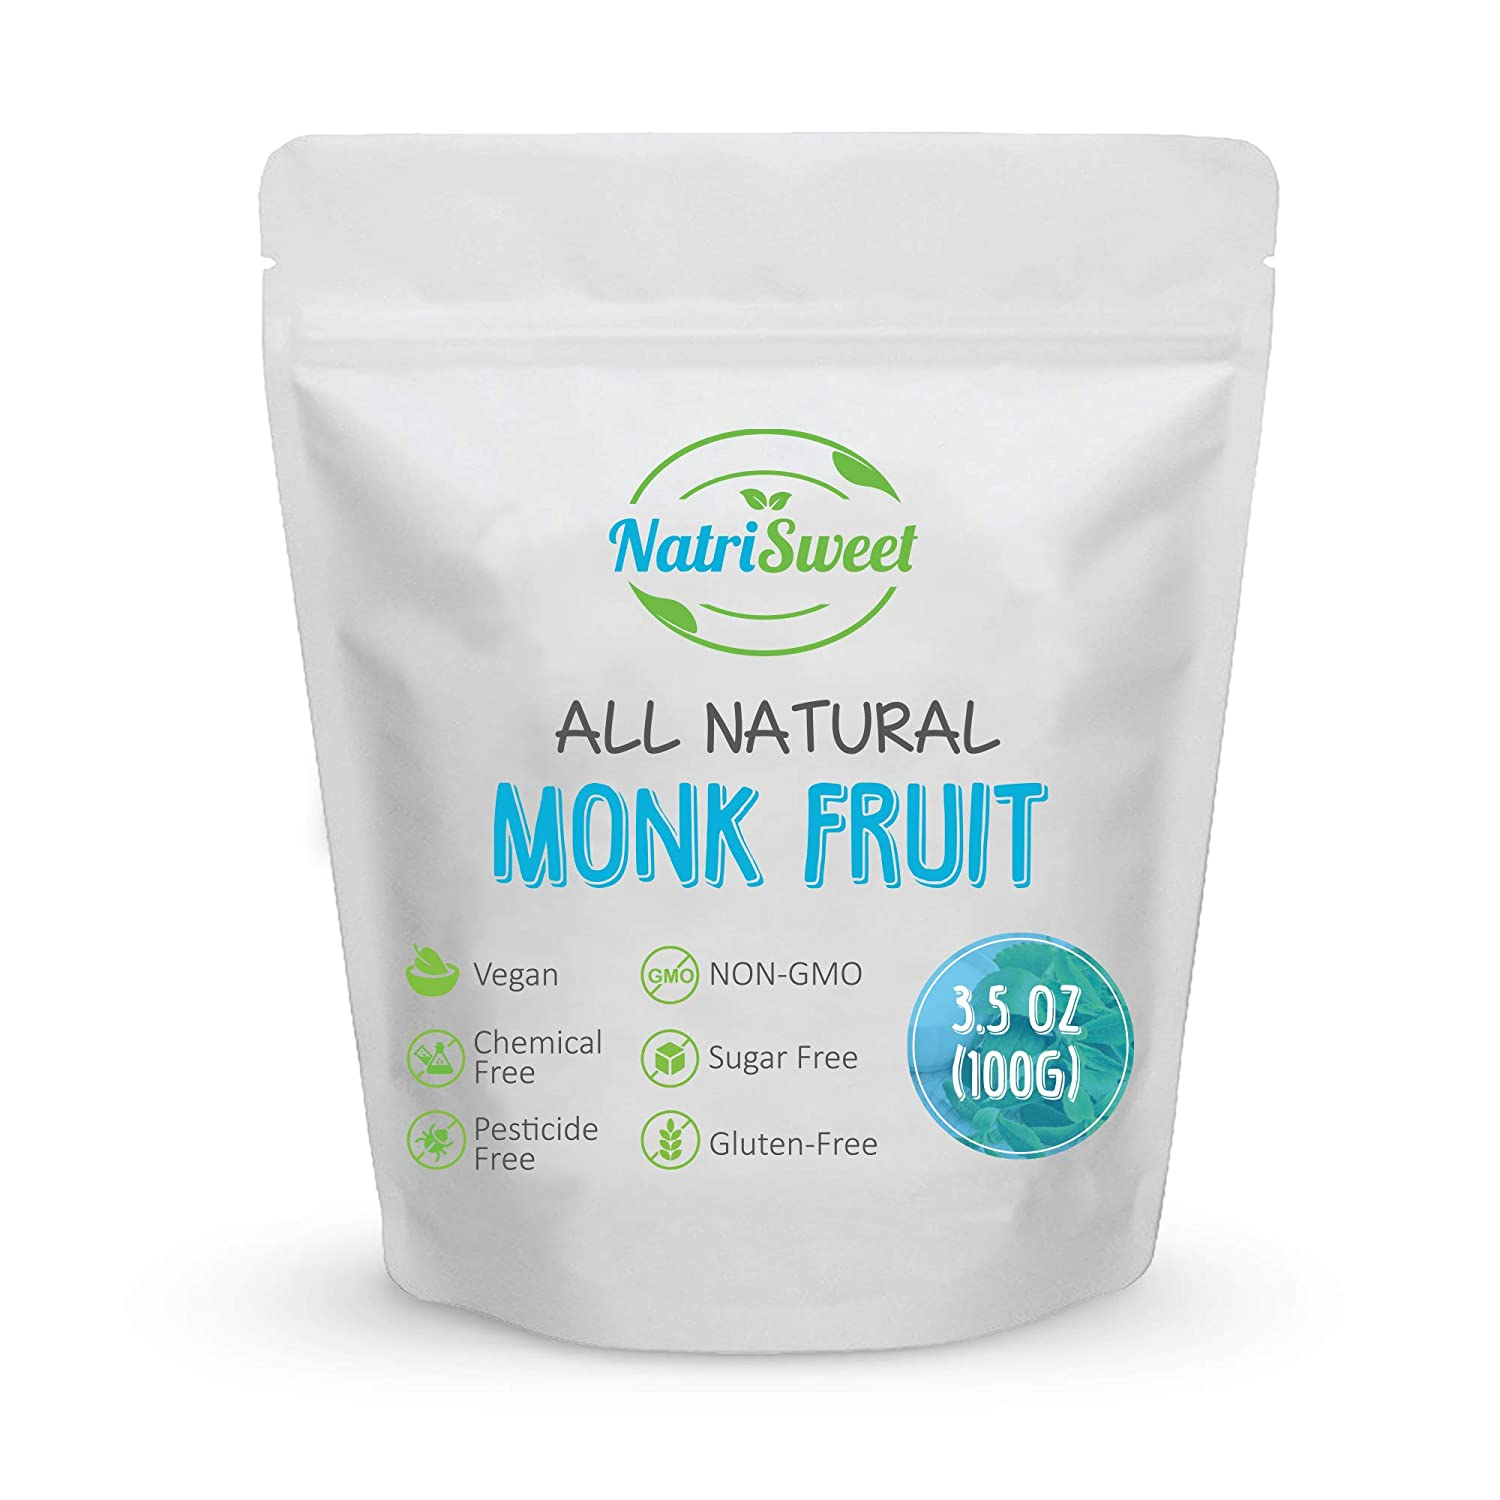 NatriSweet Monk Fruit Extract 3.5oz (100g) 322 Servings, Pure, Zero Calorie, Zero Carb, Natural Sweetener, Sugar Alternative, No Artificial Sweeteners, Perfect for Keto, Paleo & Low Carb Dieters